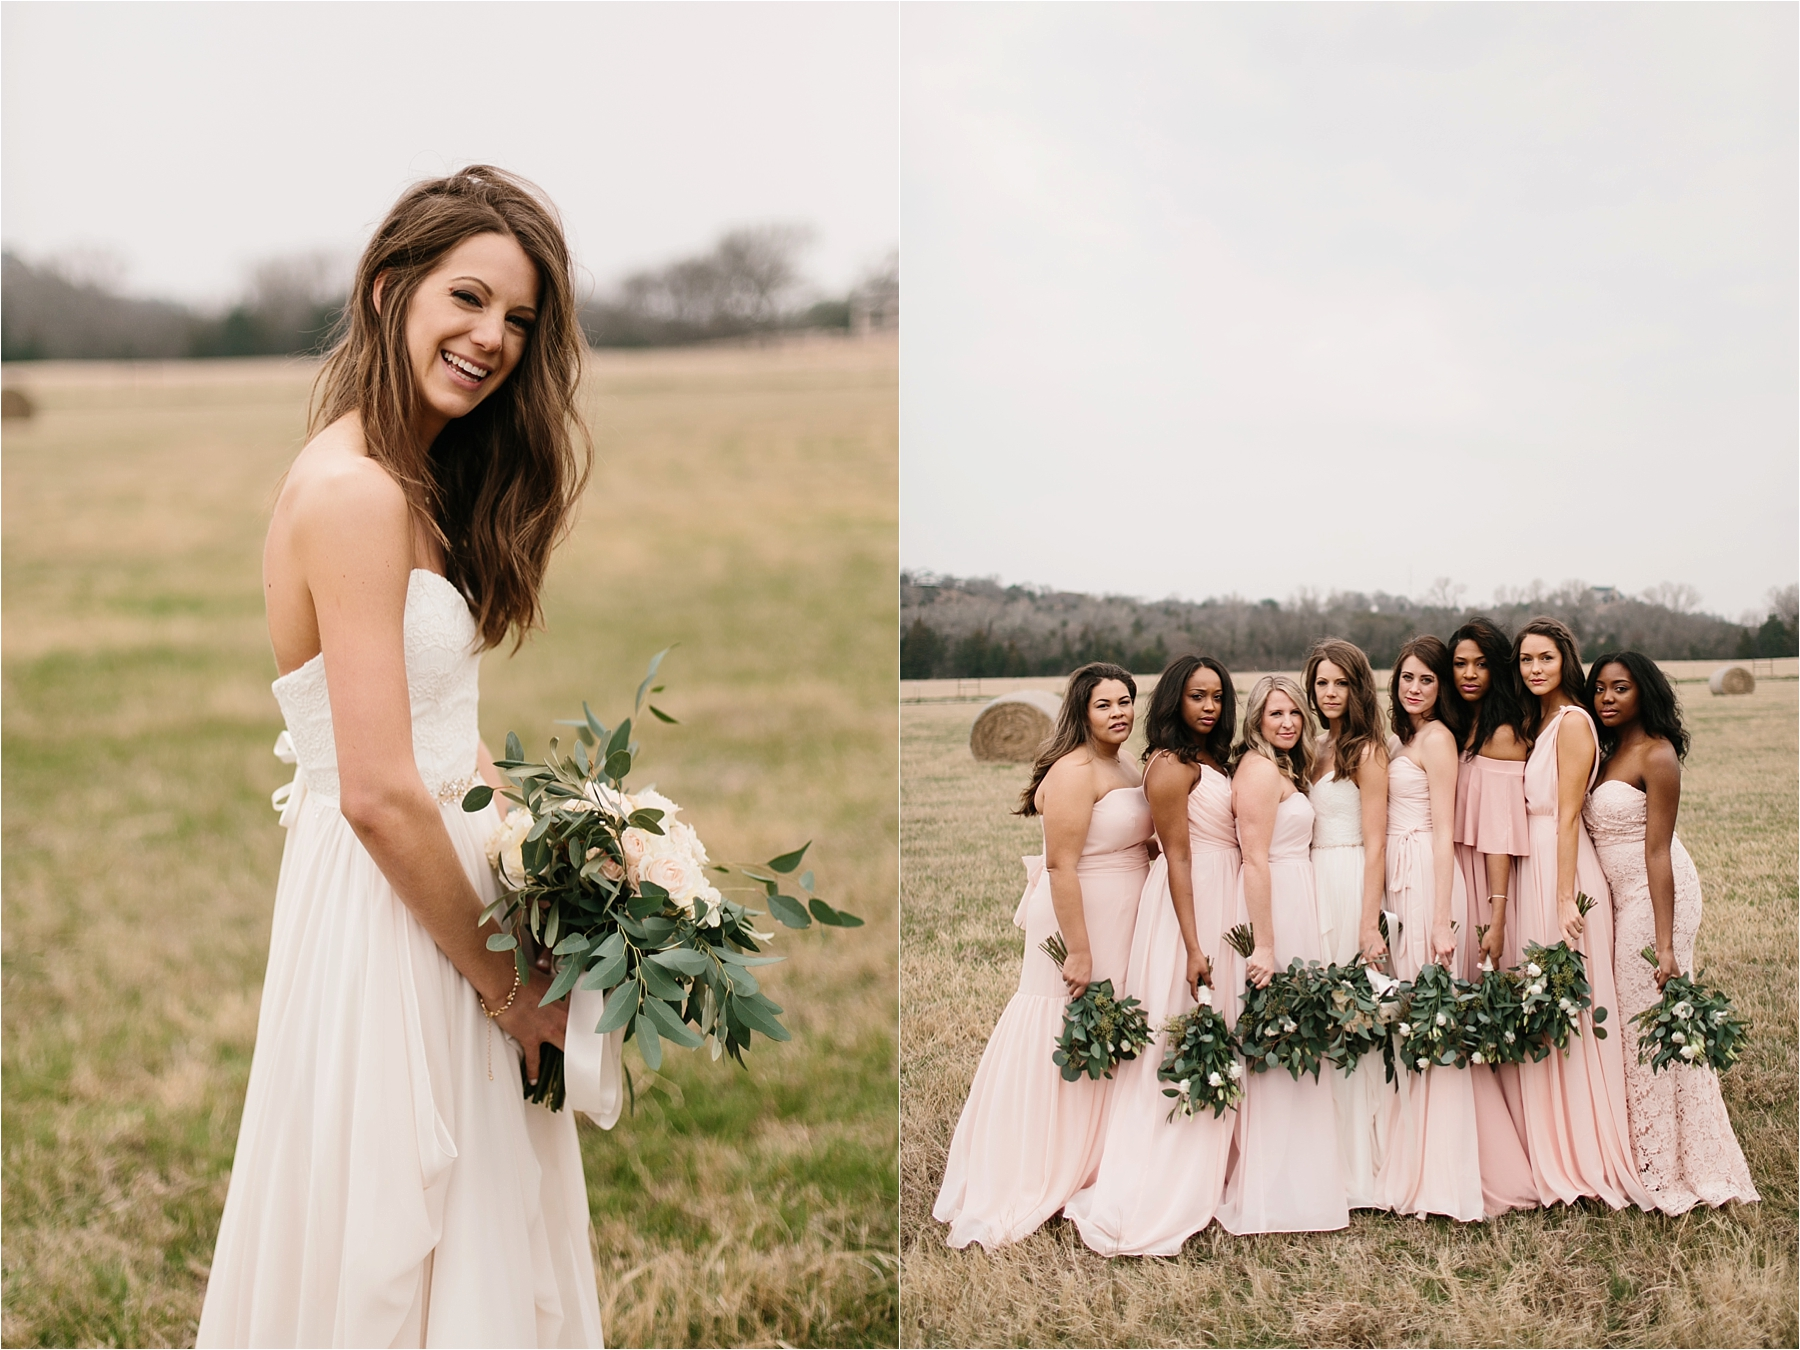 Lauren + Matt __ an intimate, emotional, blush pink, navy blue, and greenery toned wedding accents at the Brooks at Weatherford by North Texas Wedding Photographer Rachel Meagan Photography071